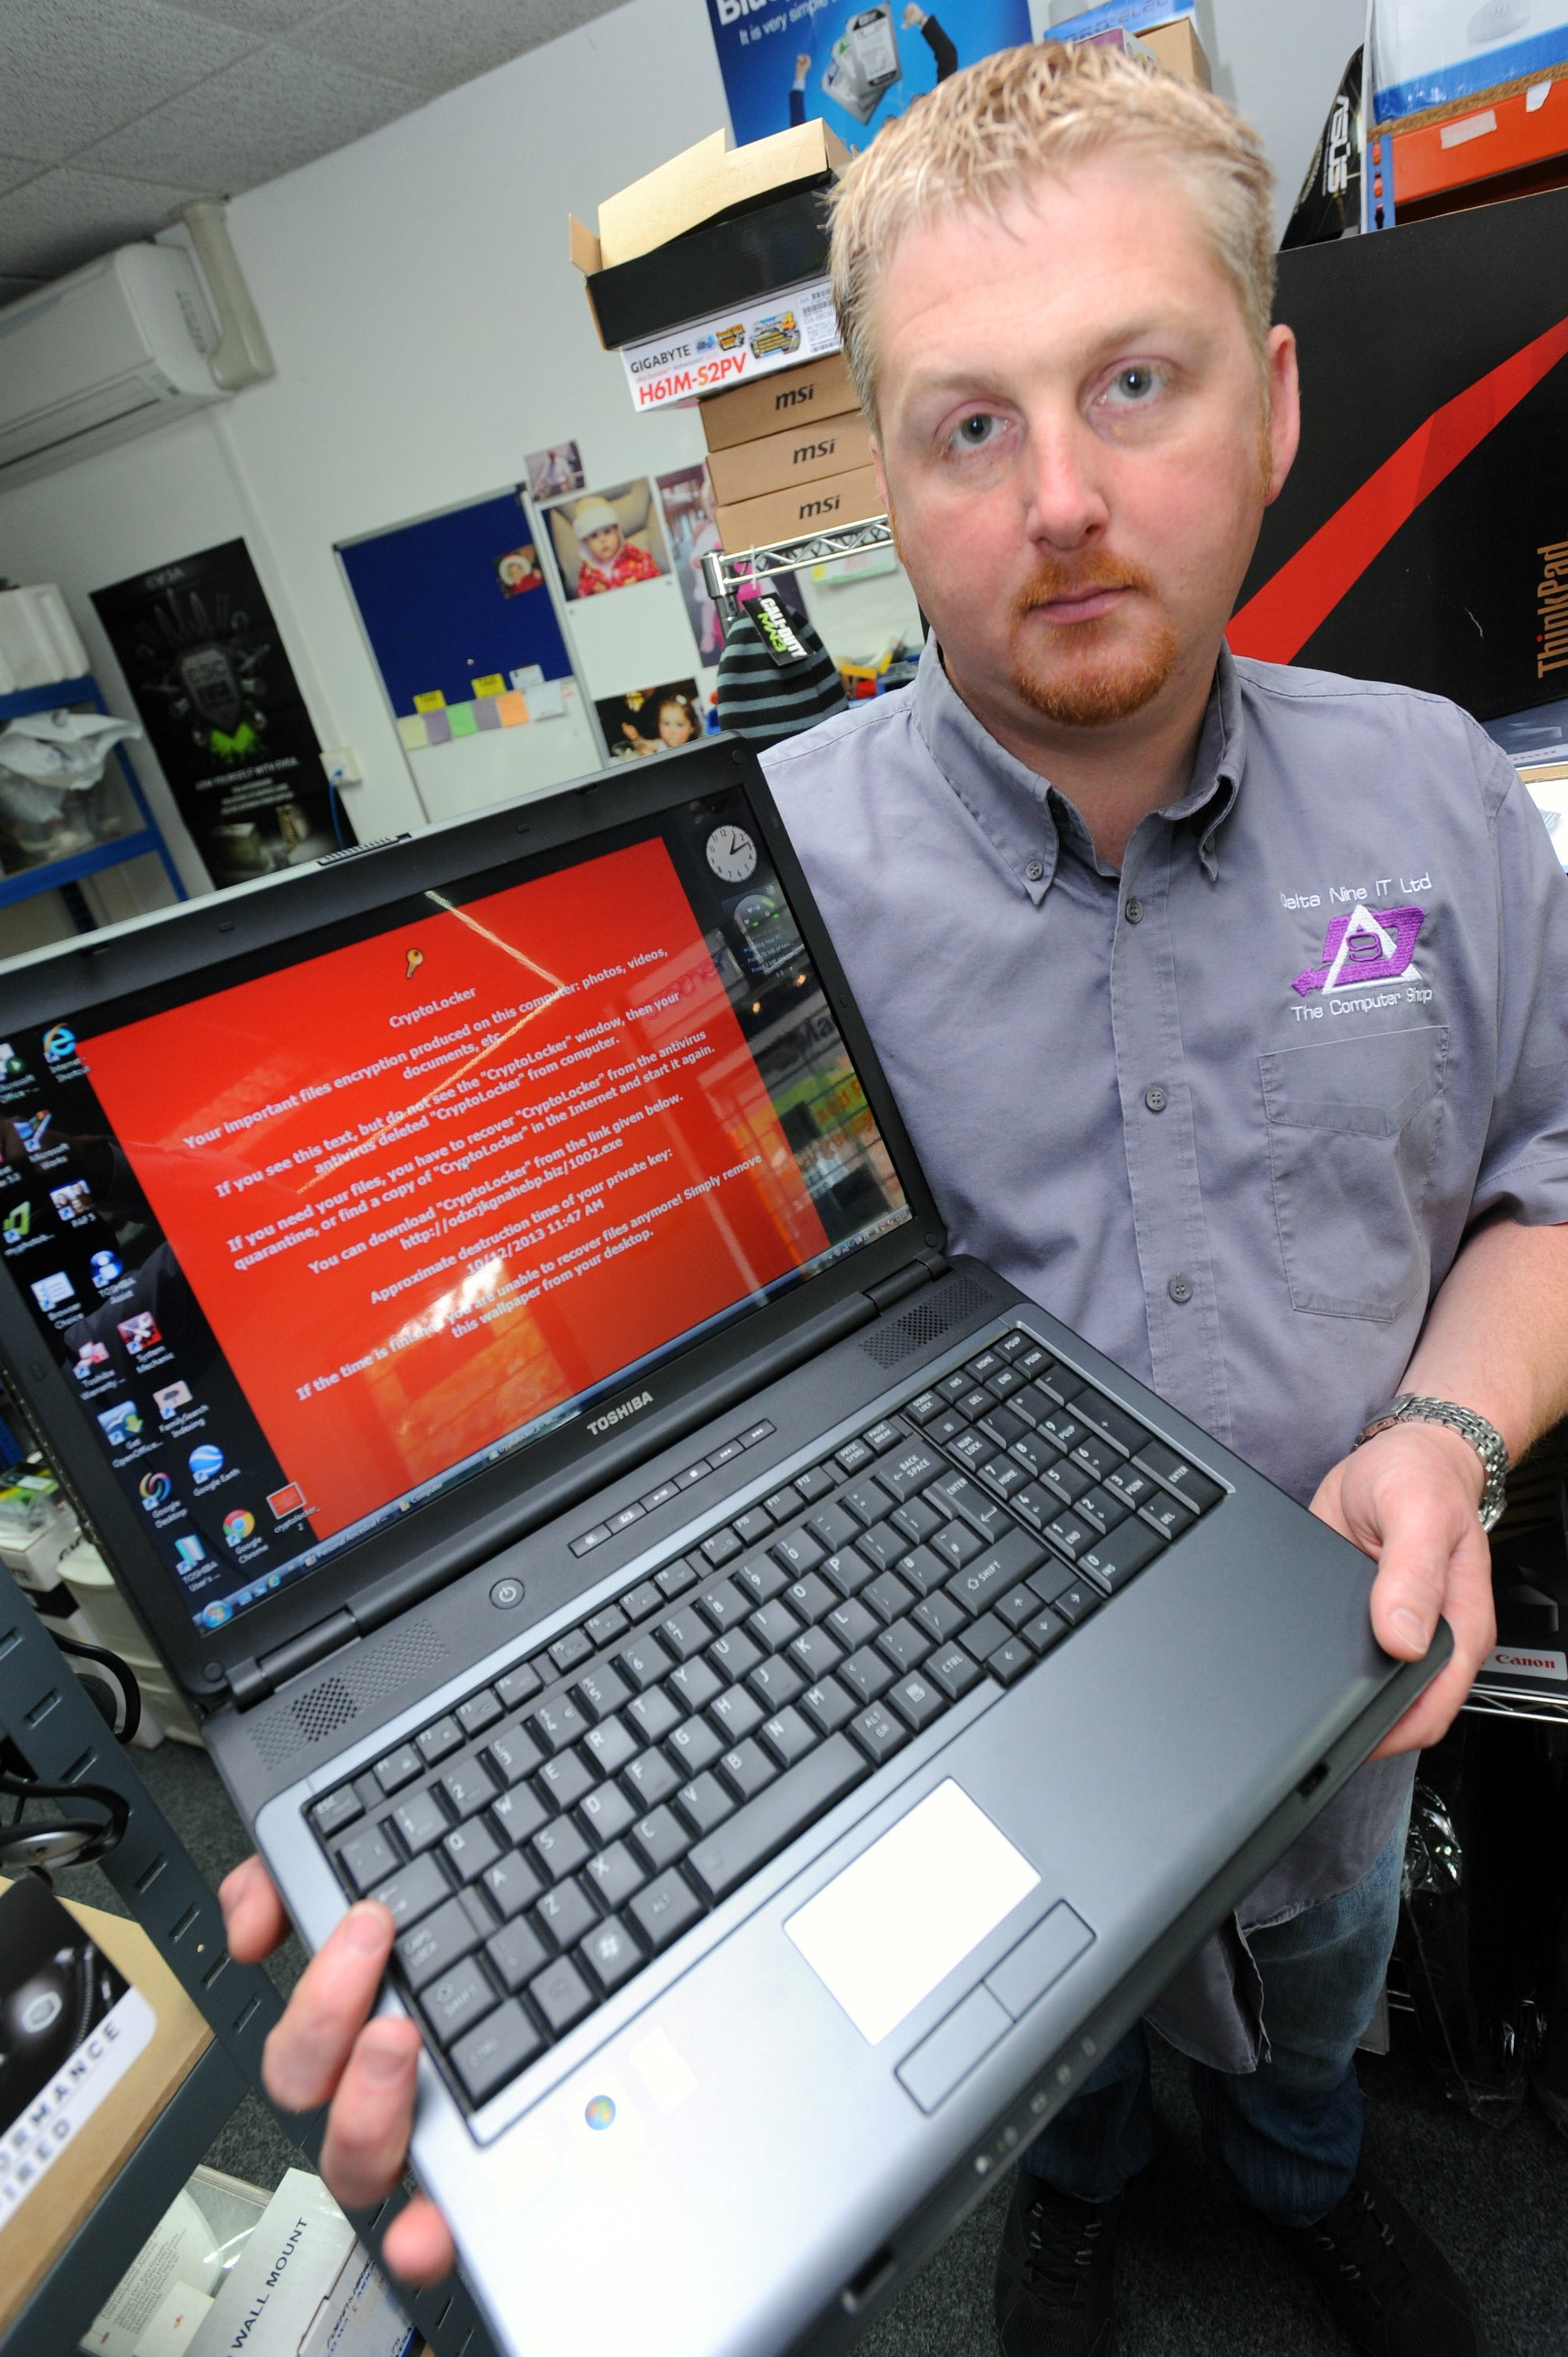 Director of Delta Nine IT Limited, Jamie Dickinson, with a computer that has been infected with the Cryptolocker virus